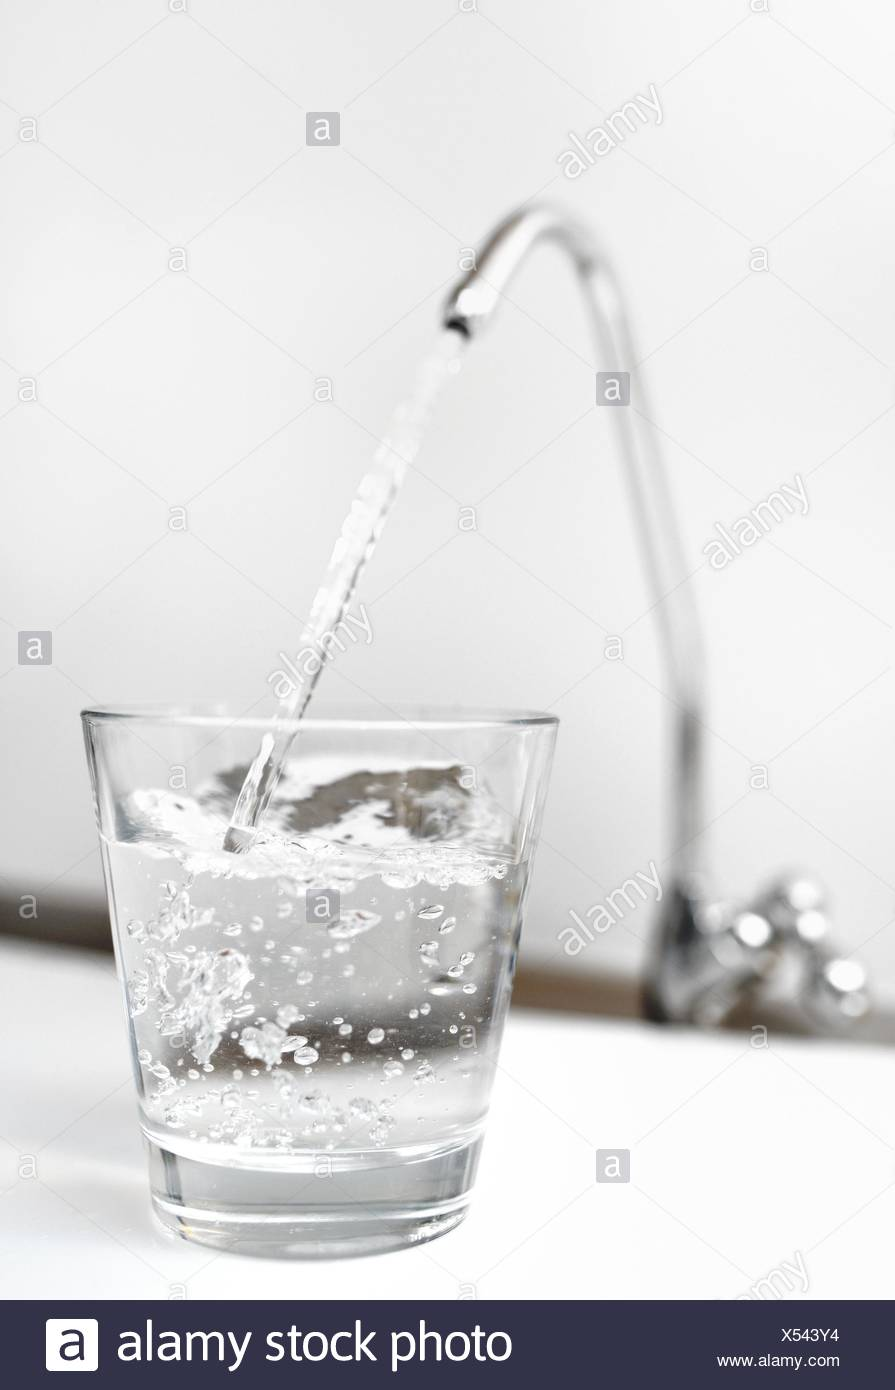 A glass of water from filter tap. - Stock Image